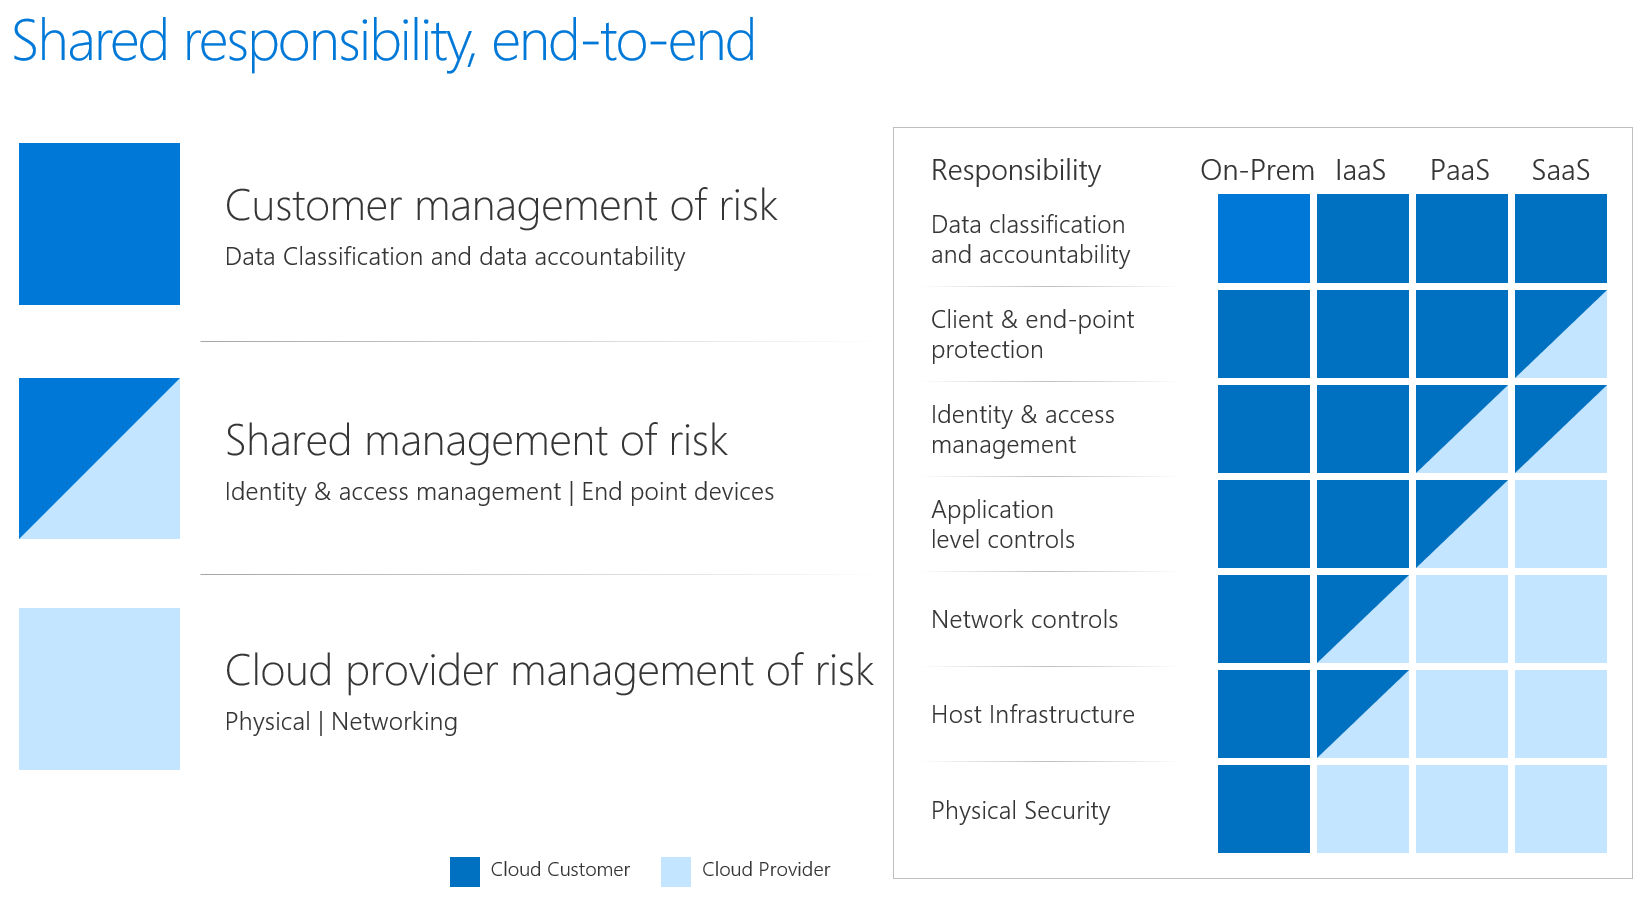 A chart image showing the management risk responsibility shared between a customer and a cloud vendor across on-premise and cloud infrastructures